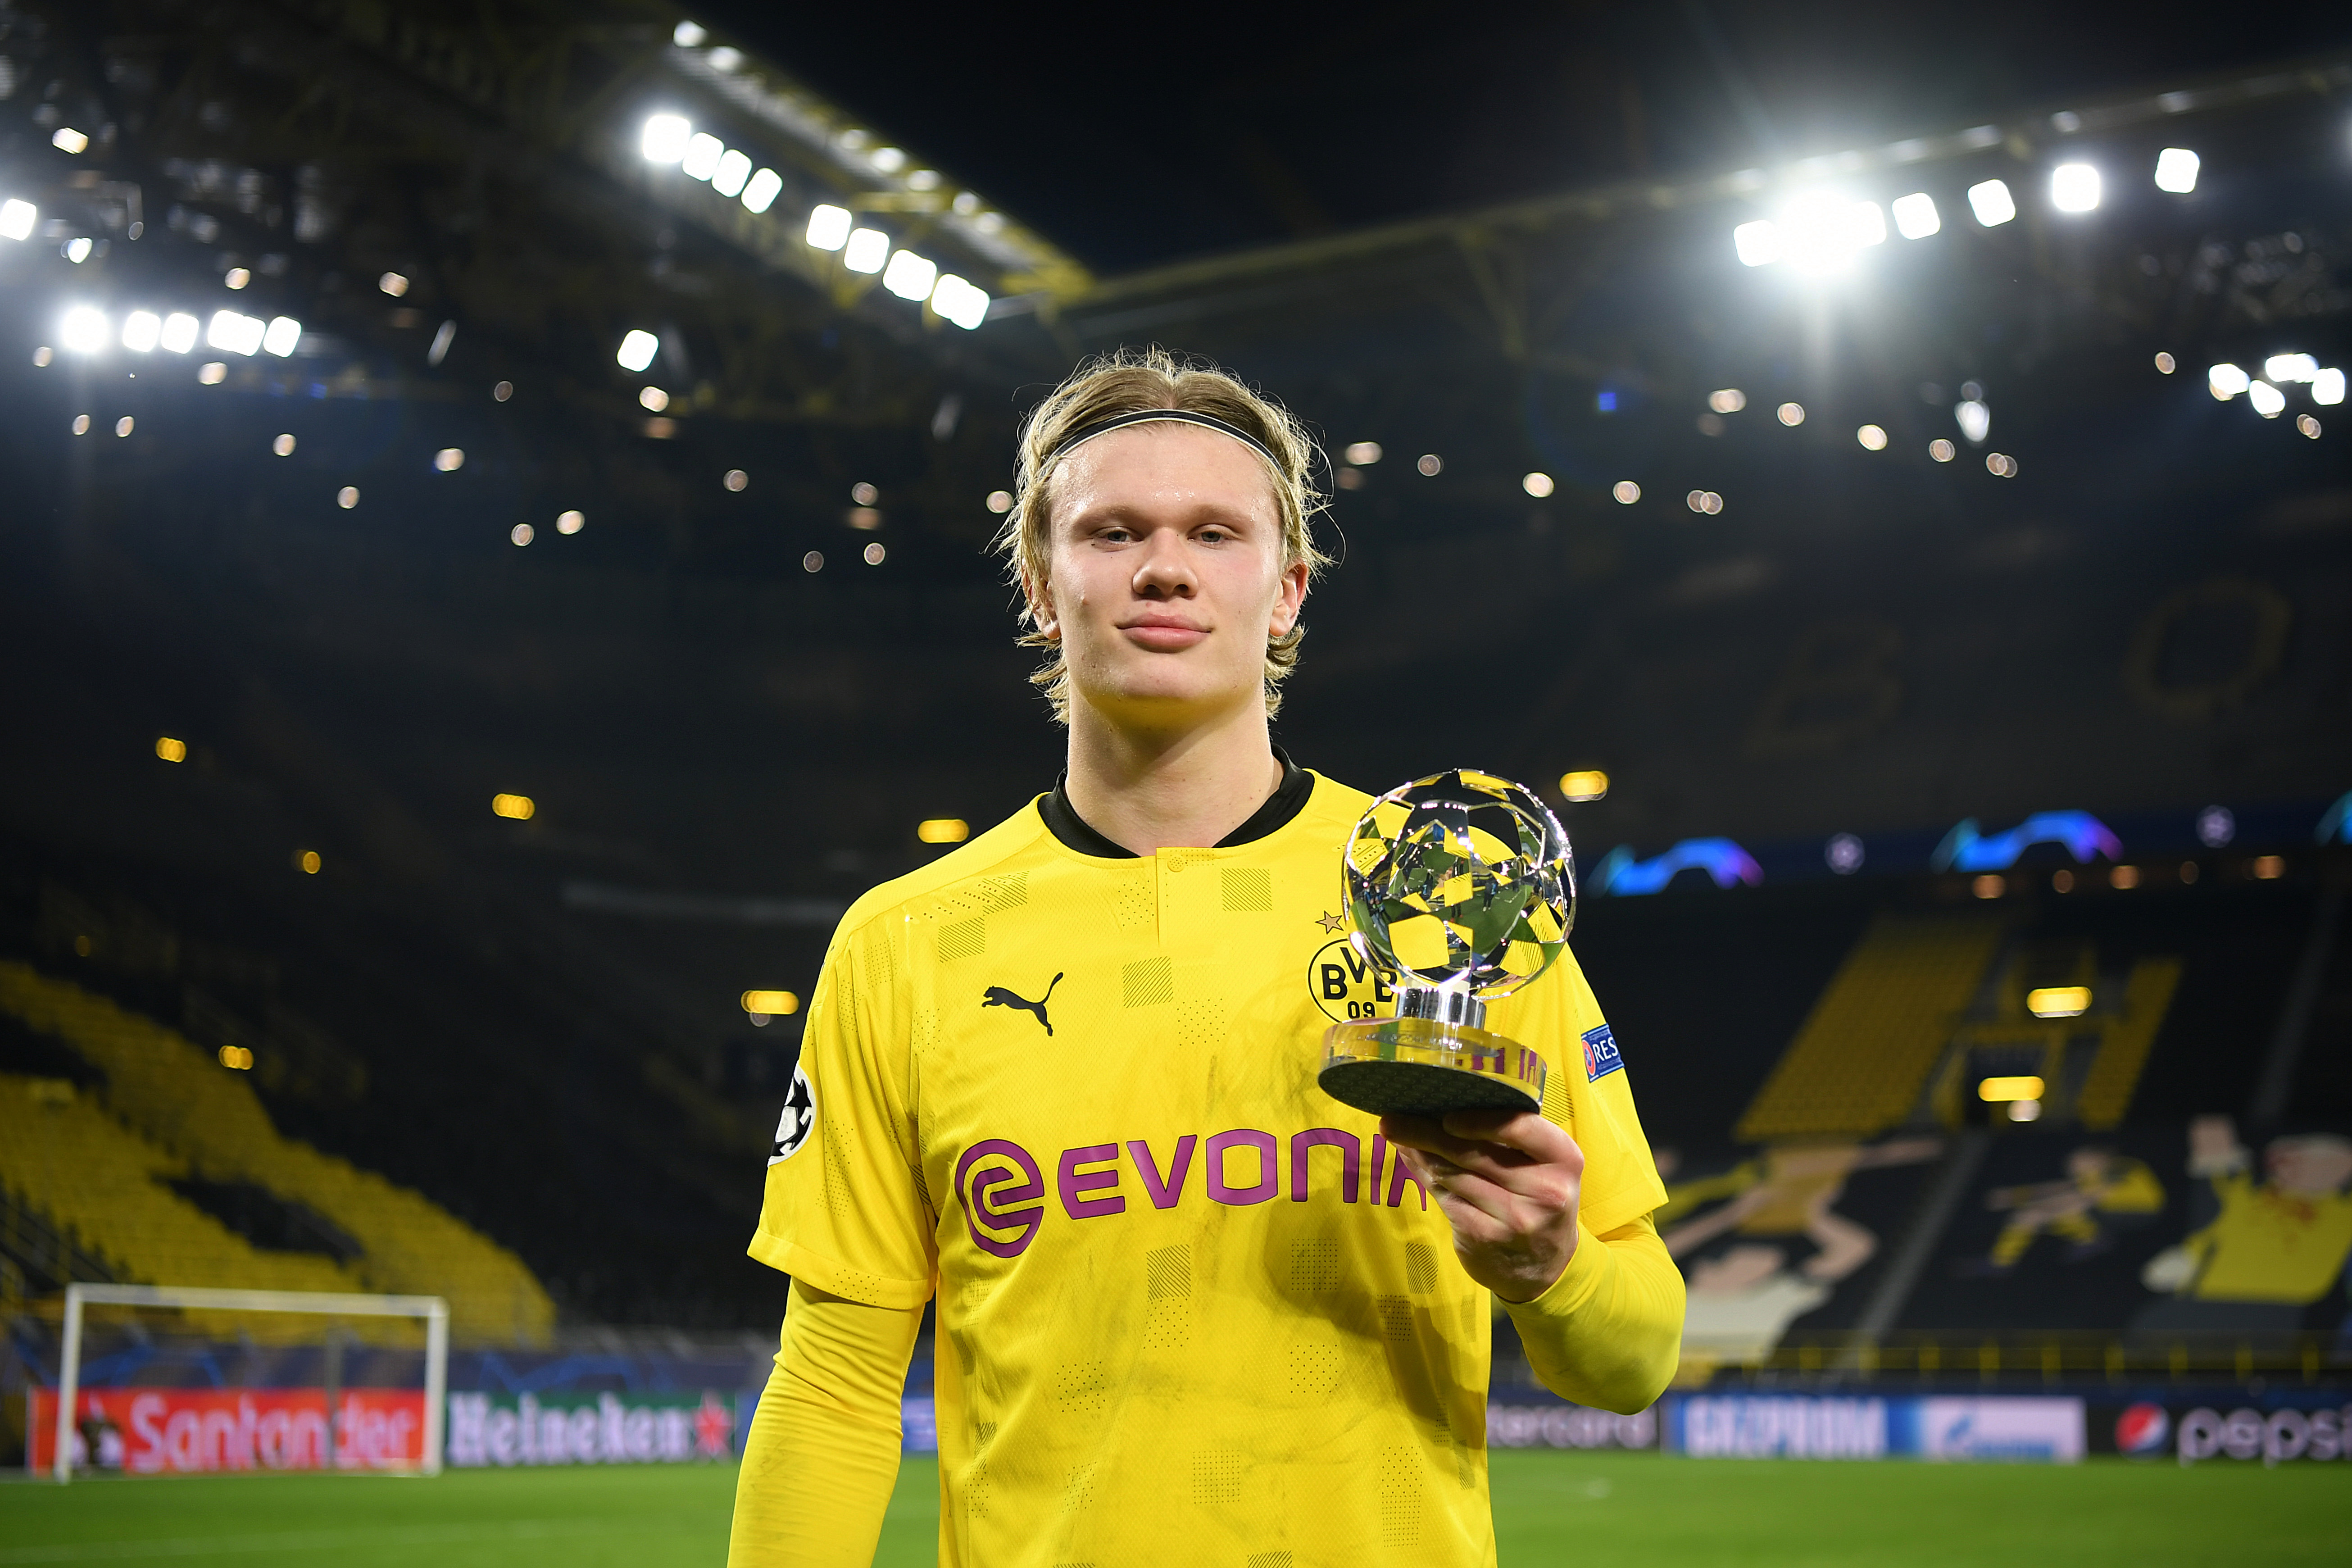 Erling Haaland could cost more than Barcelona got for Neymar transfer as Real Madrid, Manchester United, Man City and Chelsea hunt for goalscorer